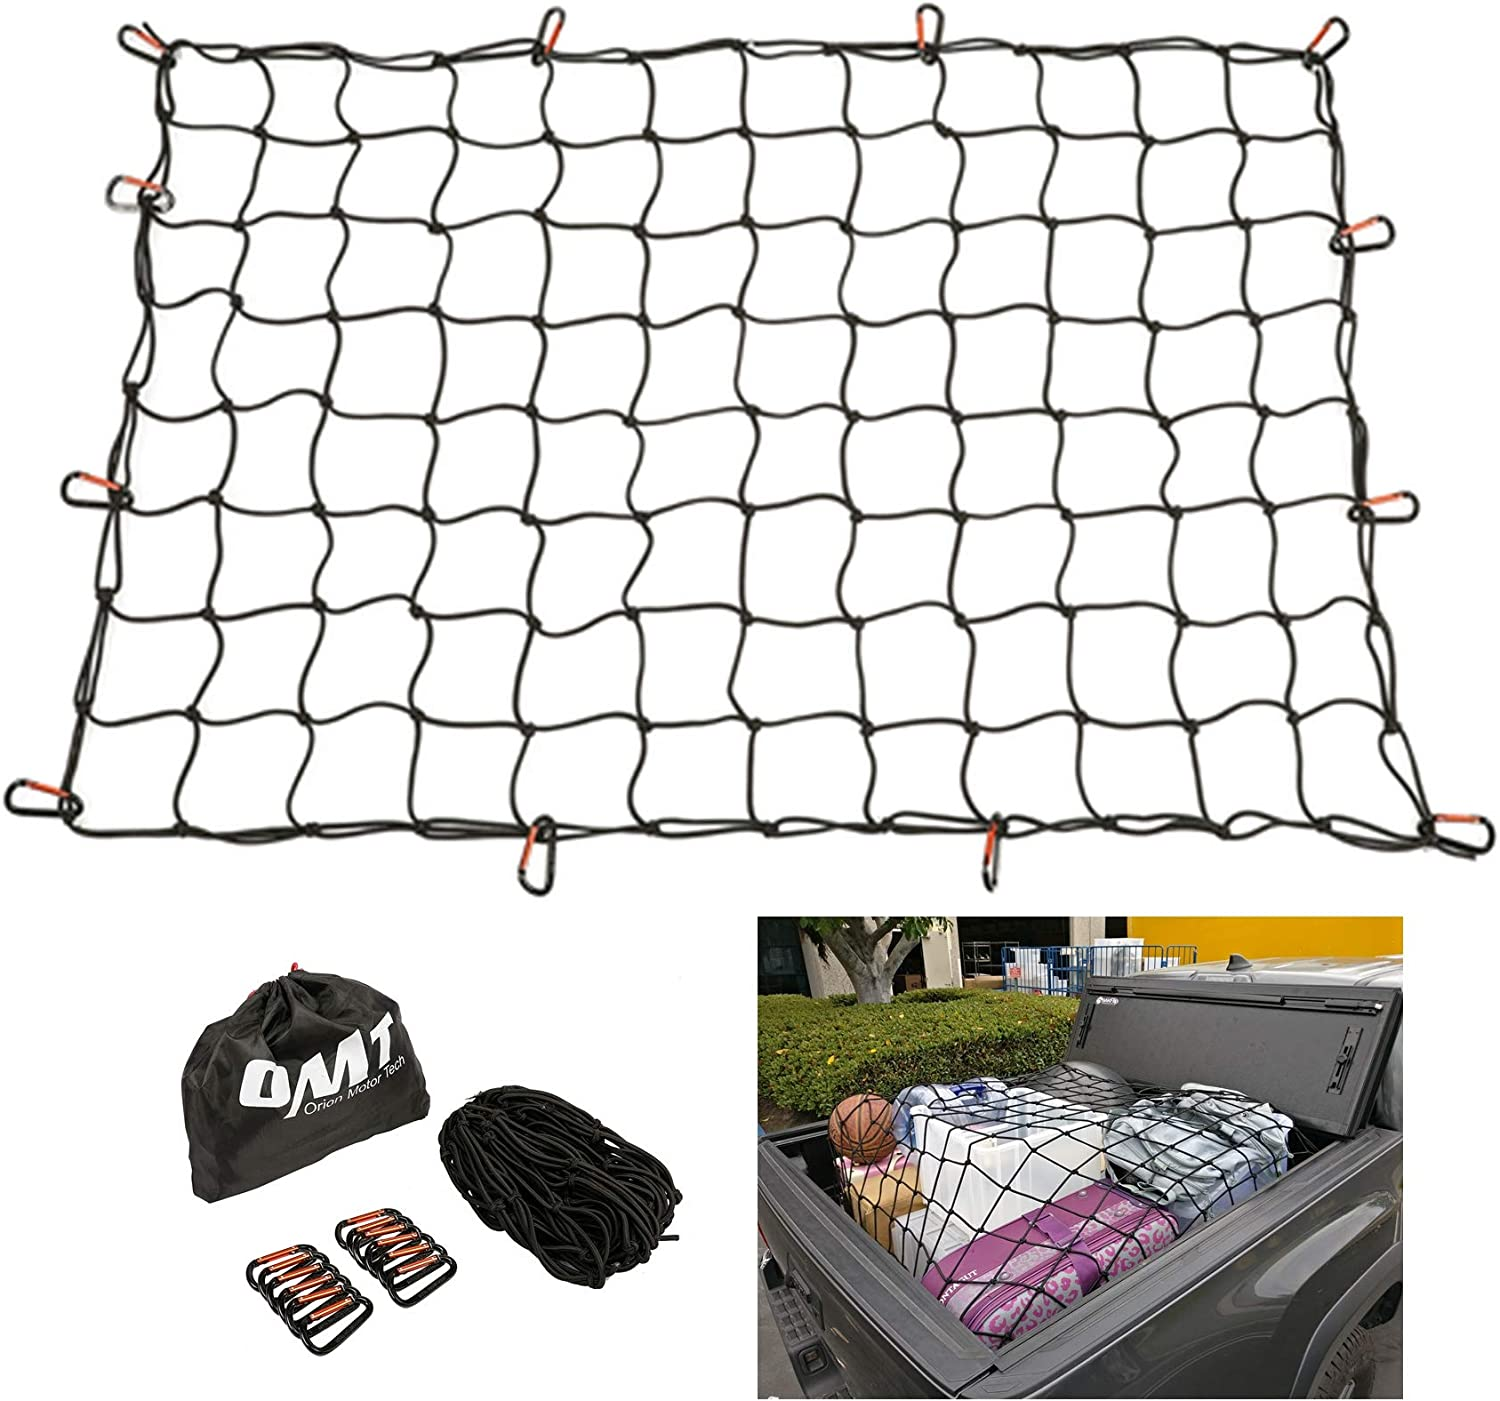 MICTUNING 3x4 to 6x8 Heavy Duty Bungee Cargo Net Latex Truck Bed Mesh 12pcs Free Carabiners /& Storage Bag for Loads Tighter Cargo Hitch